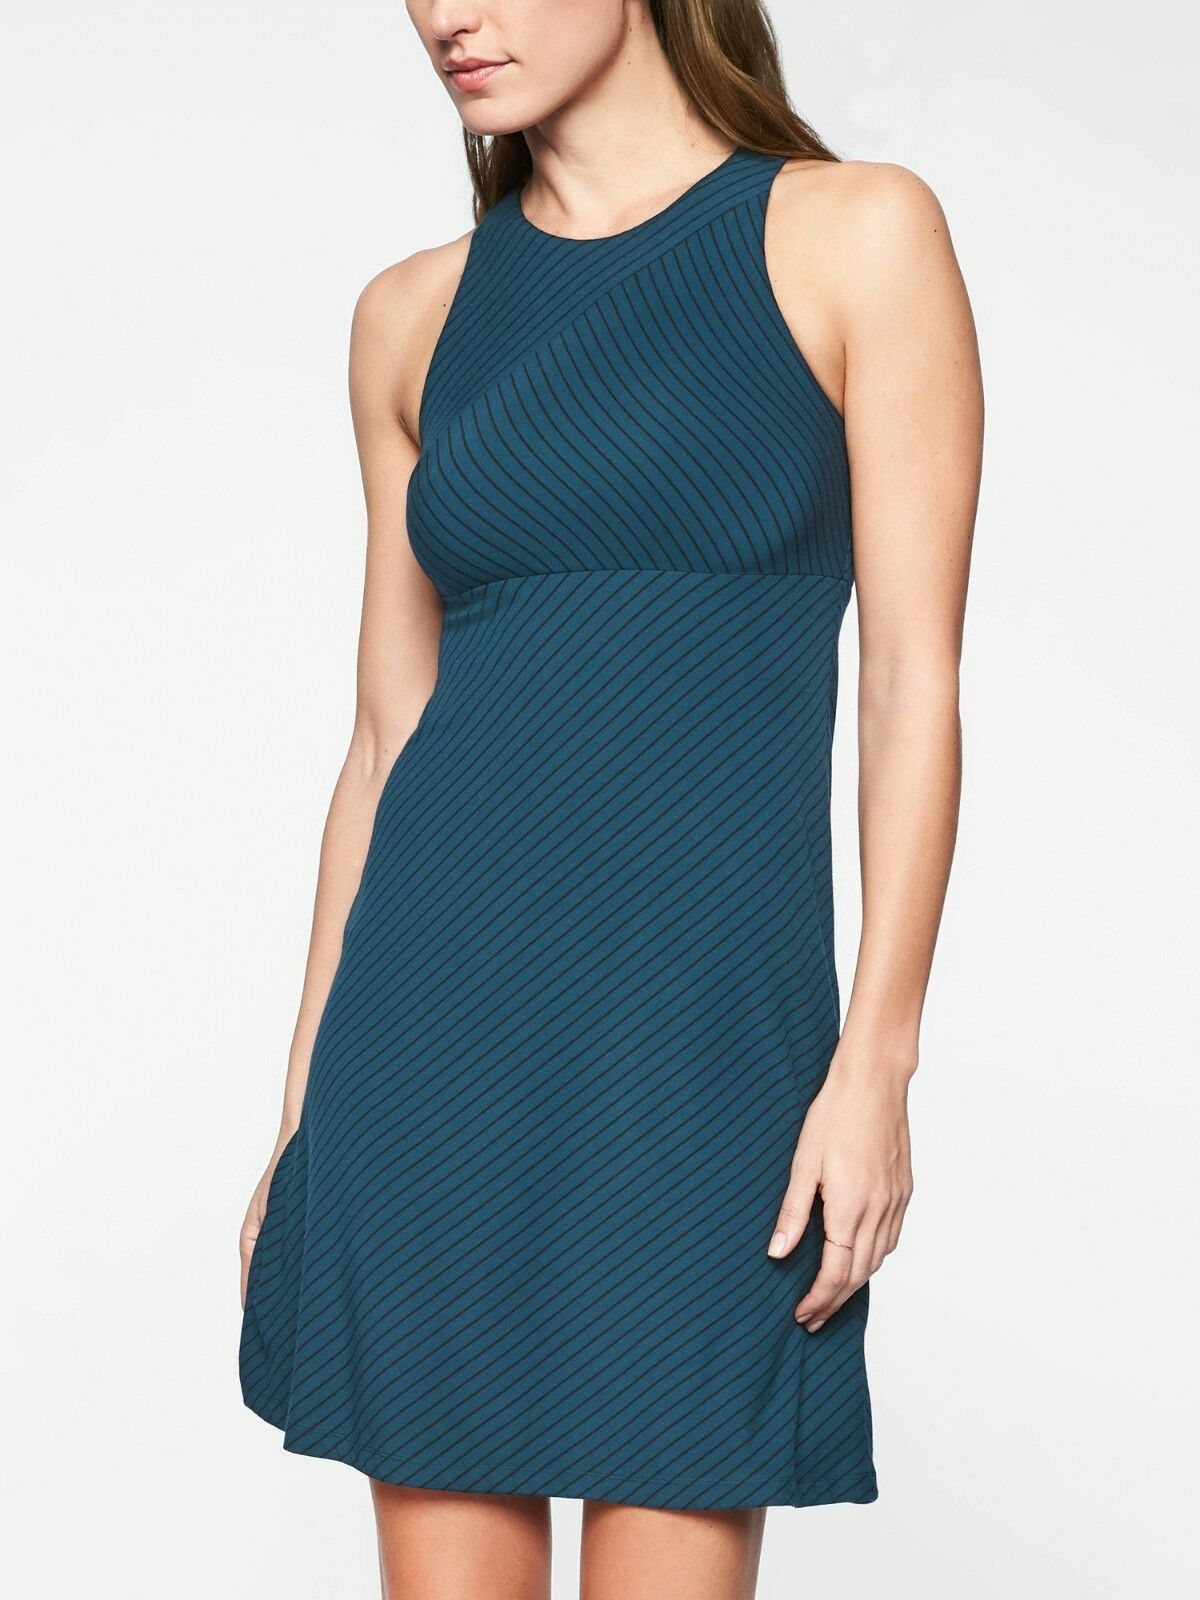 Athleta Santorini High Neck Mix Stripe Dress,Constellation Blau Größe XSP